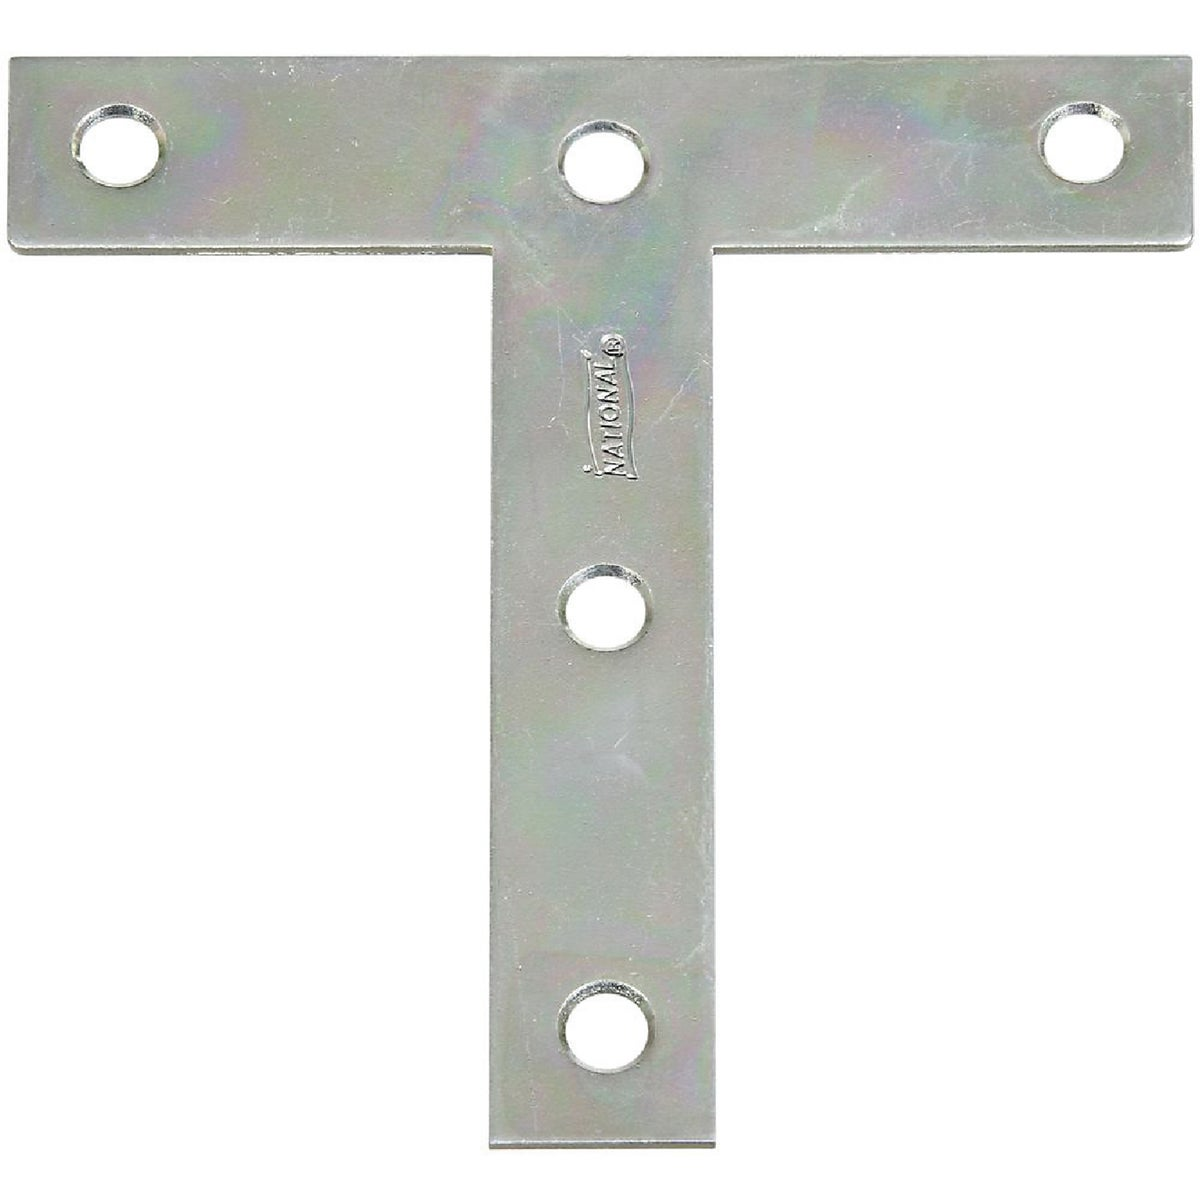 4X4 ZINC T-PLATE - N266445 by National Mfg Co